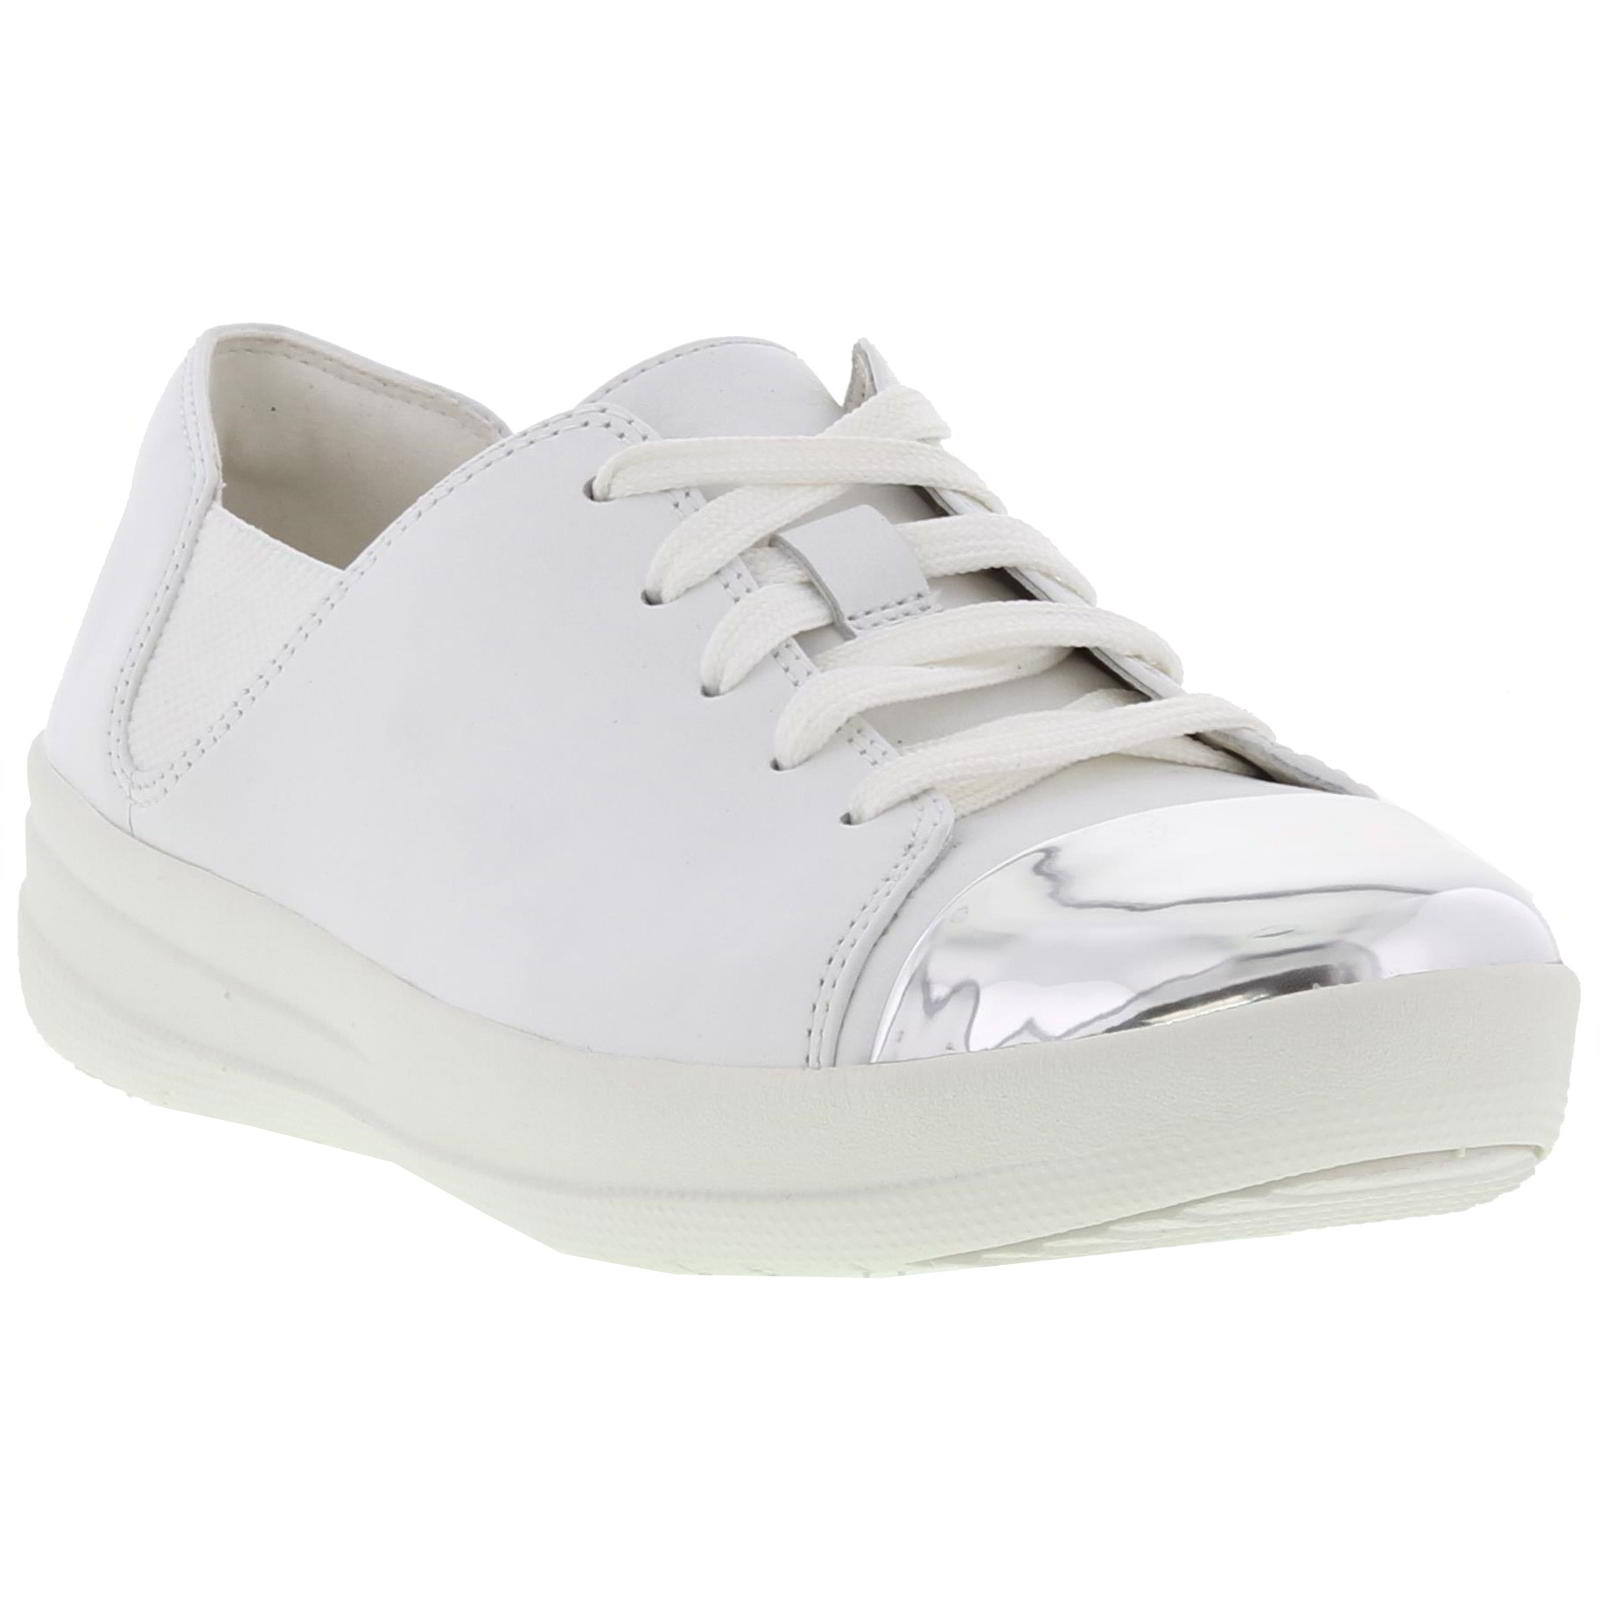 002550ad5 Detalhes sobre Fitflop F Sporty Mirror Toe Sneaker Womens Ladies White  Trainers Shoes Size 4-8